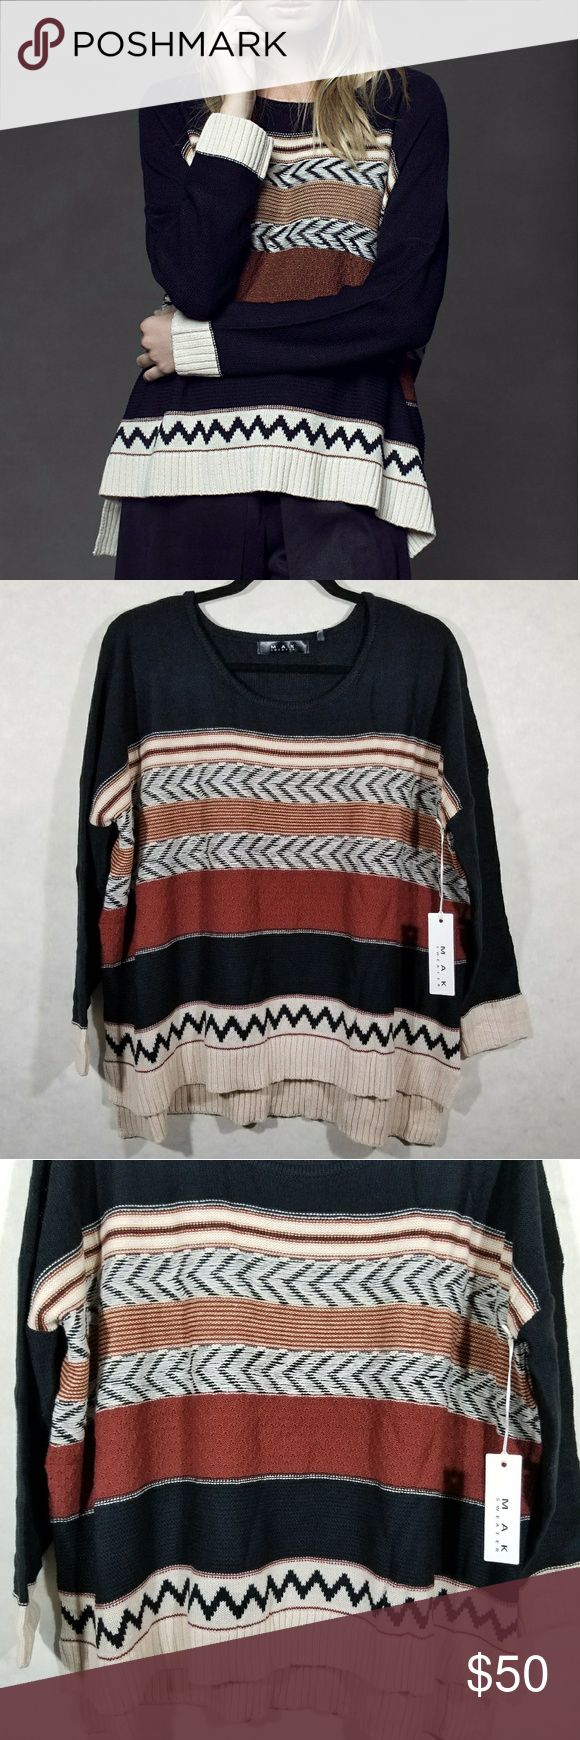 """NET MAK Black Oversized Dominga Tribal Sweater Adorable and sofy light weight horizontal knit pattern - perfect for fall. 100% acrylic tribal pattern. No flaws.  Size tag says S/M. Oversized fit. Check measurements to ensure you love the fit.  Chest armpit to armpit 54"""" Sleeve length from shoulder ~22"""" Top to bottom from shoulder front 22.75"""" back 25.25"""" MAK Sweaters Crew & Scoop Necks"""